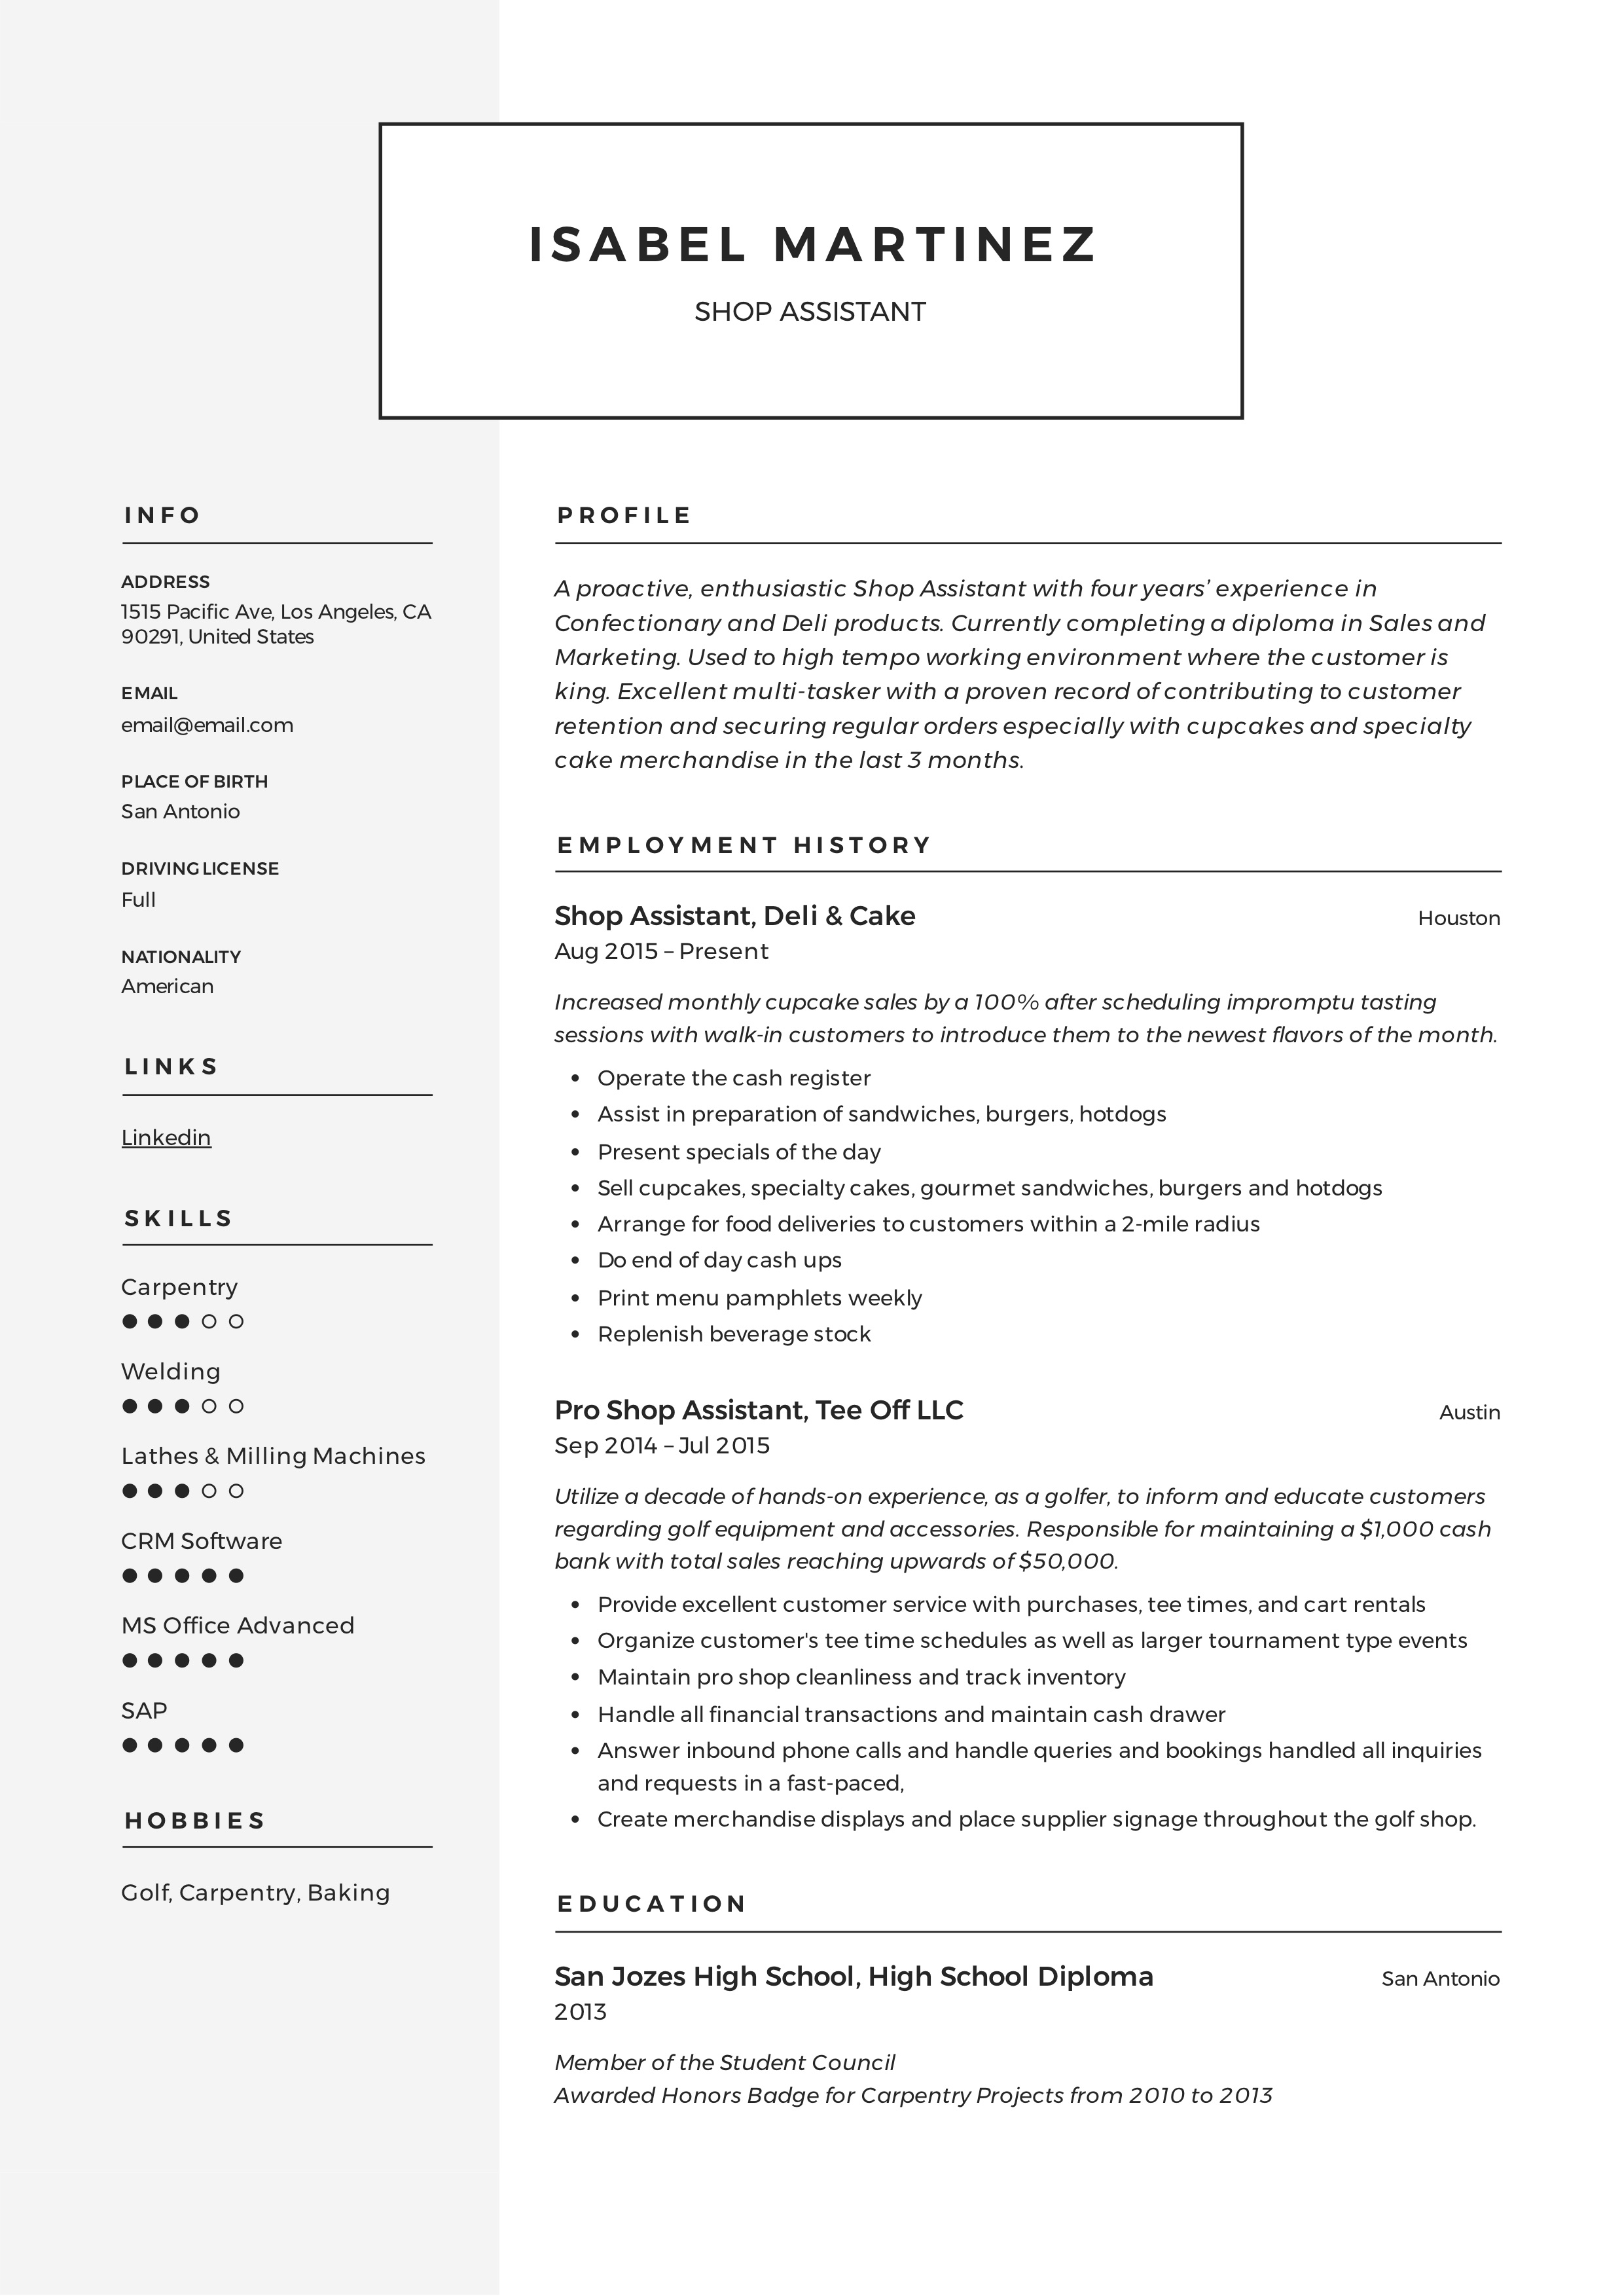 Shop Assistant Resume Example & Writing Guide | PDF Samples